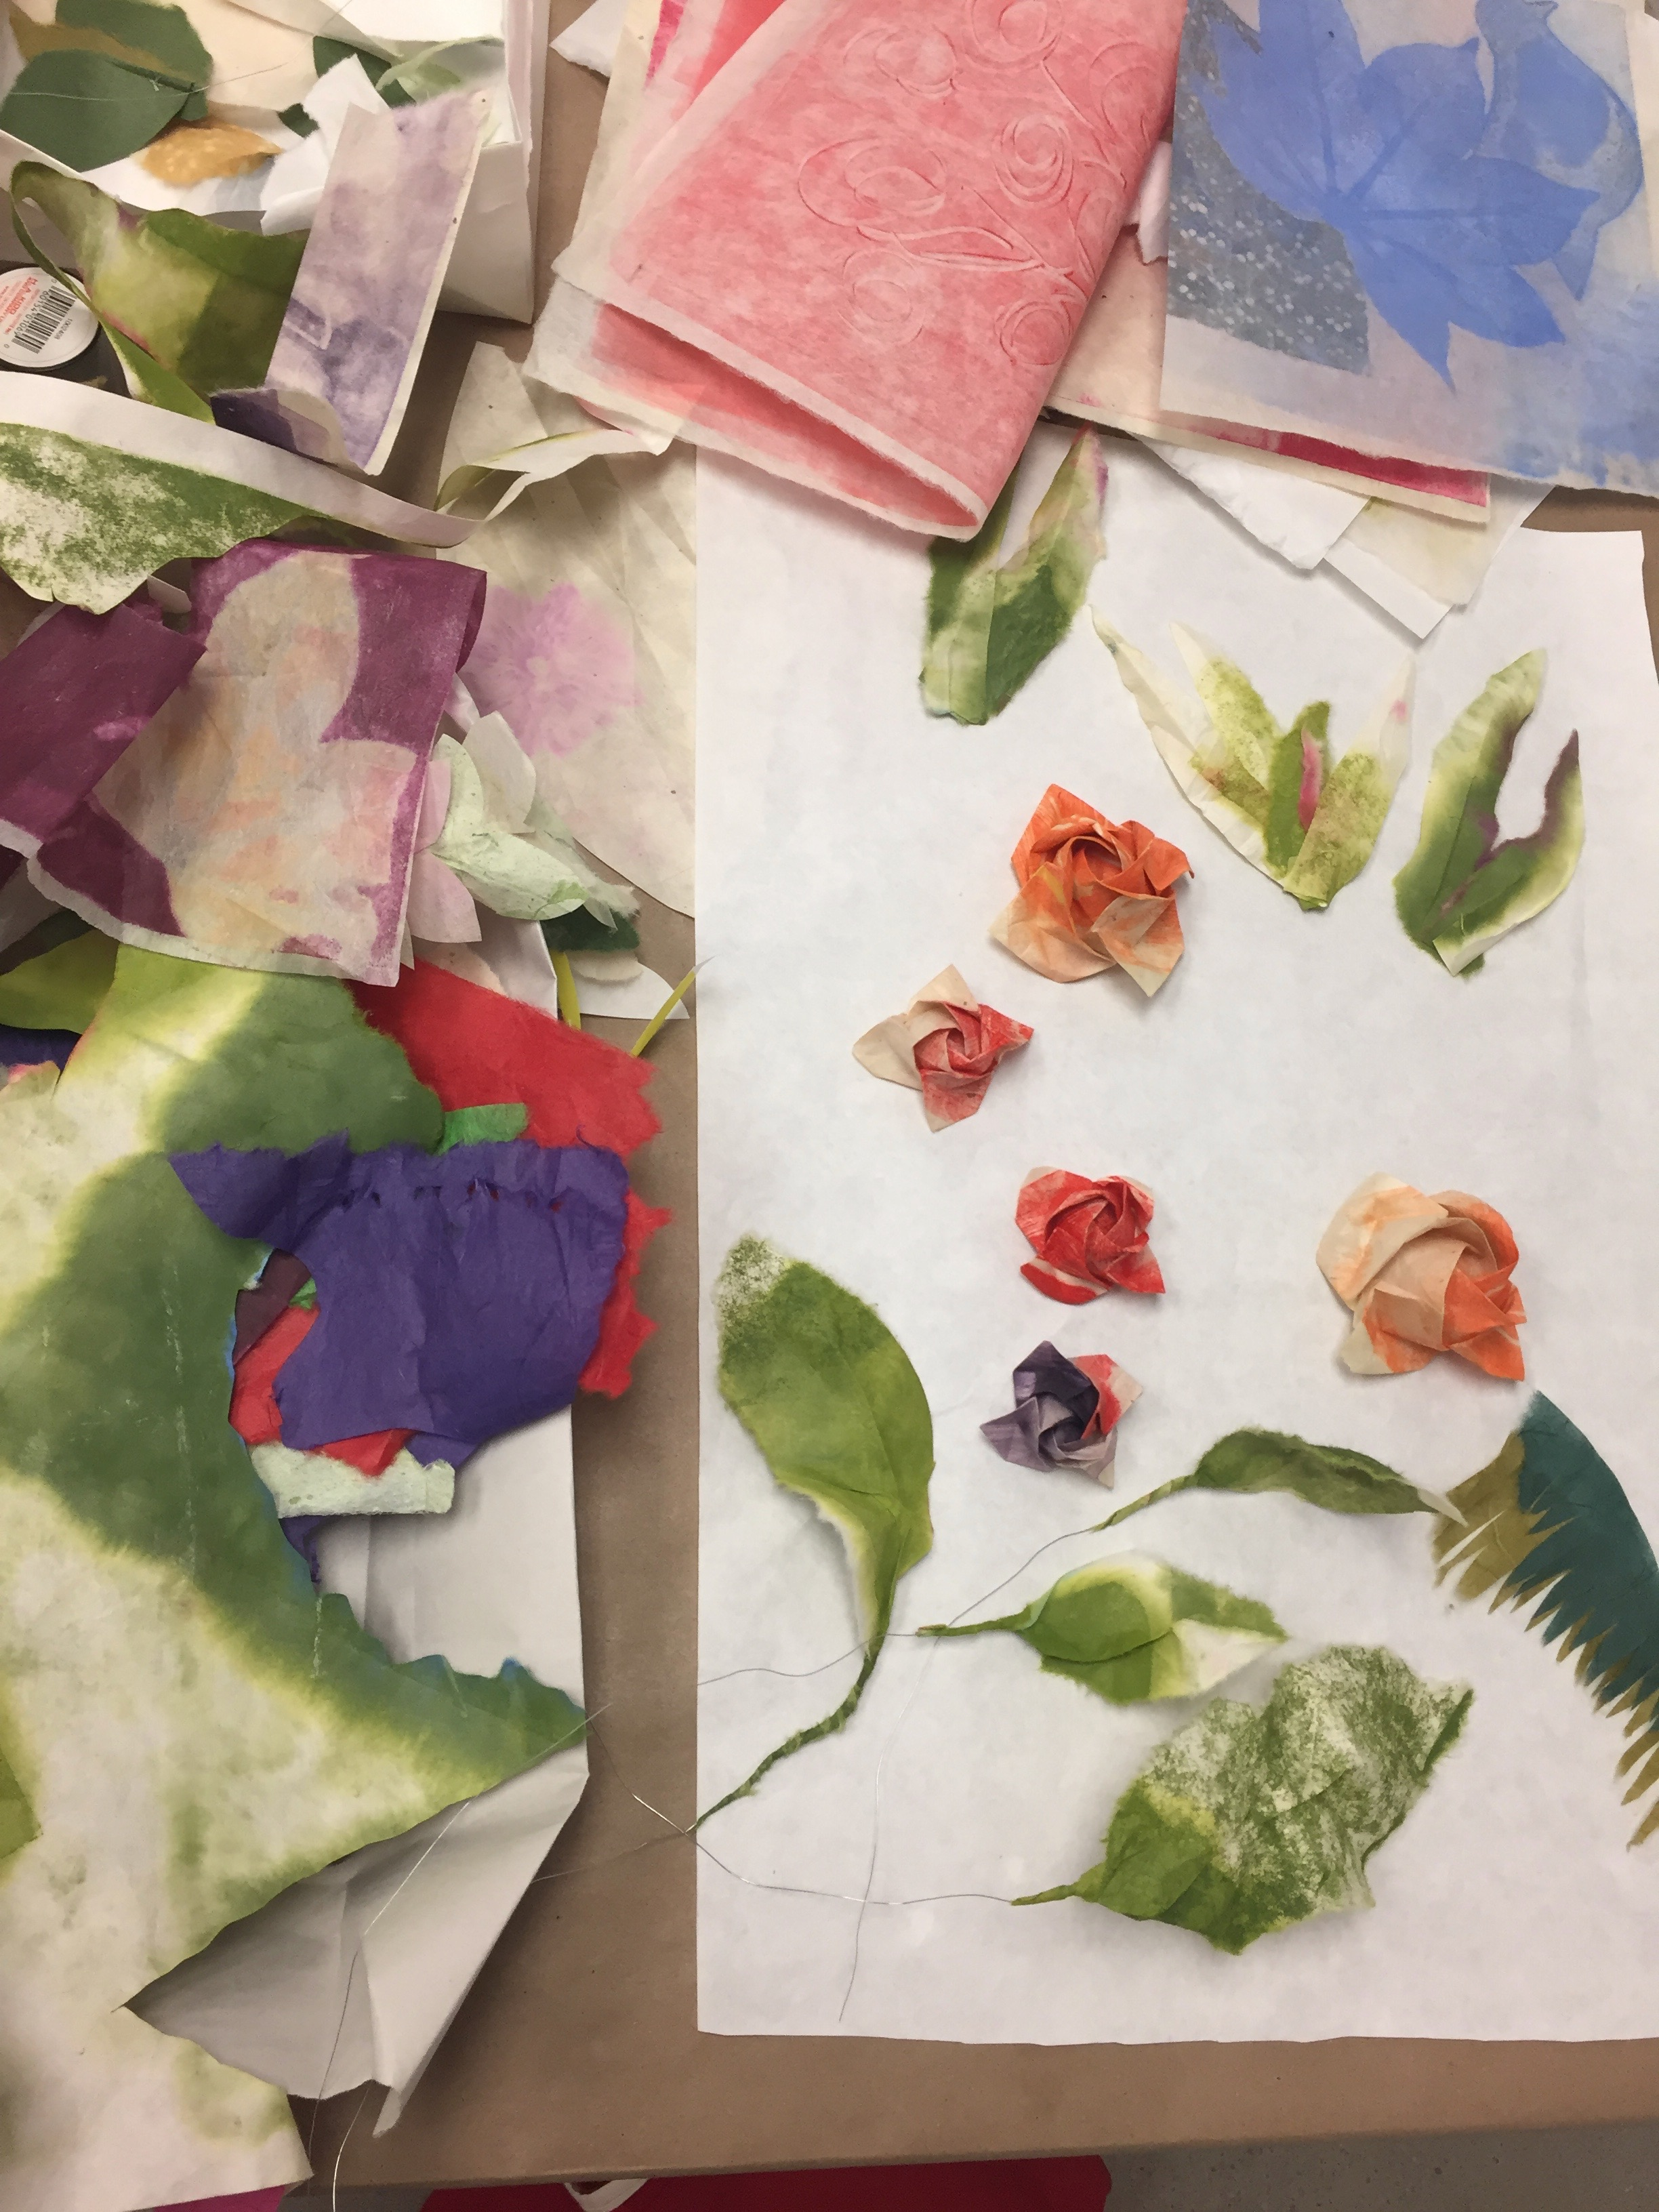 playing with different forms using various printed papers